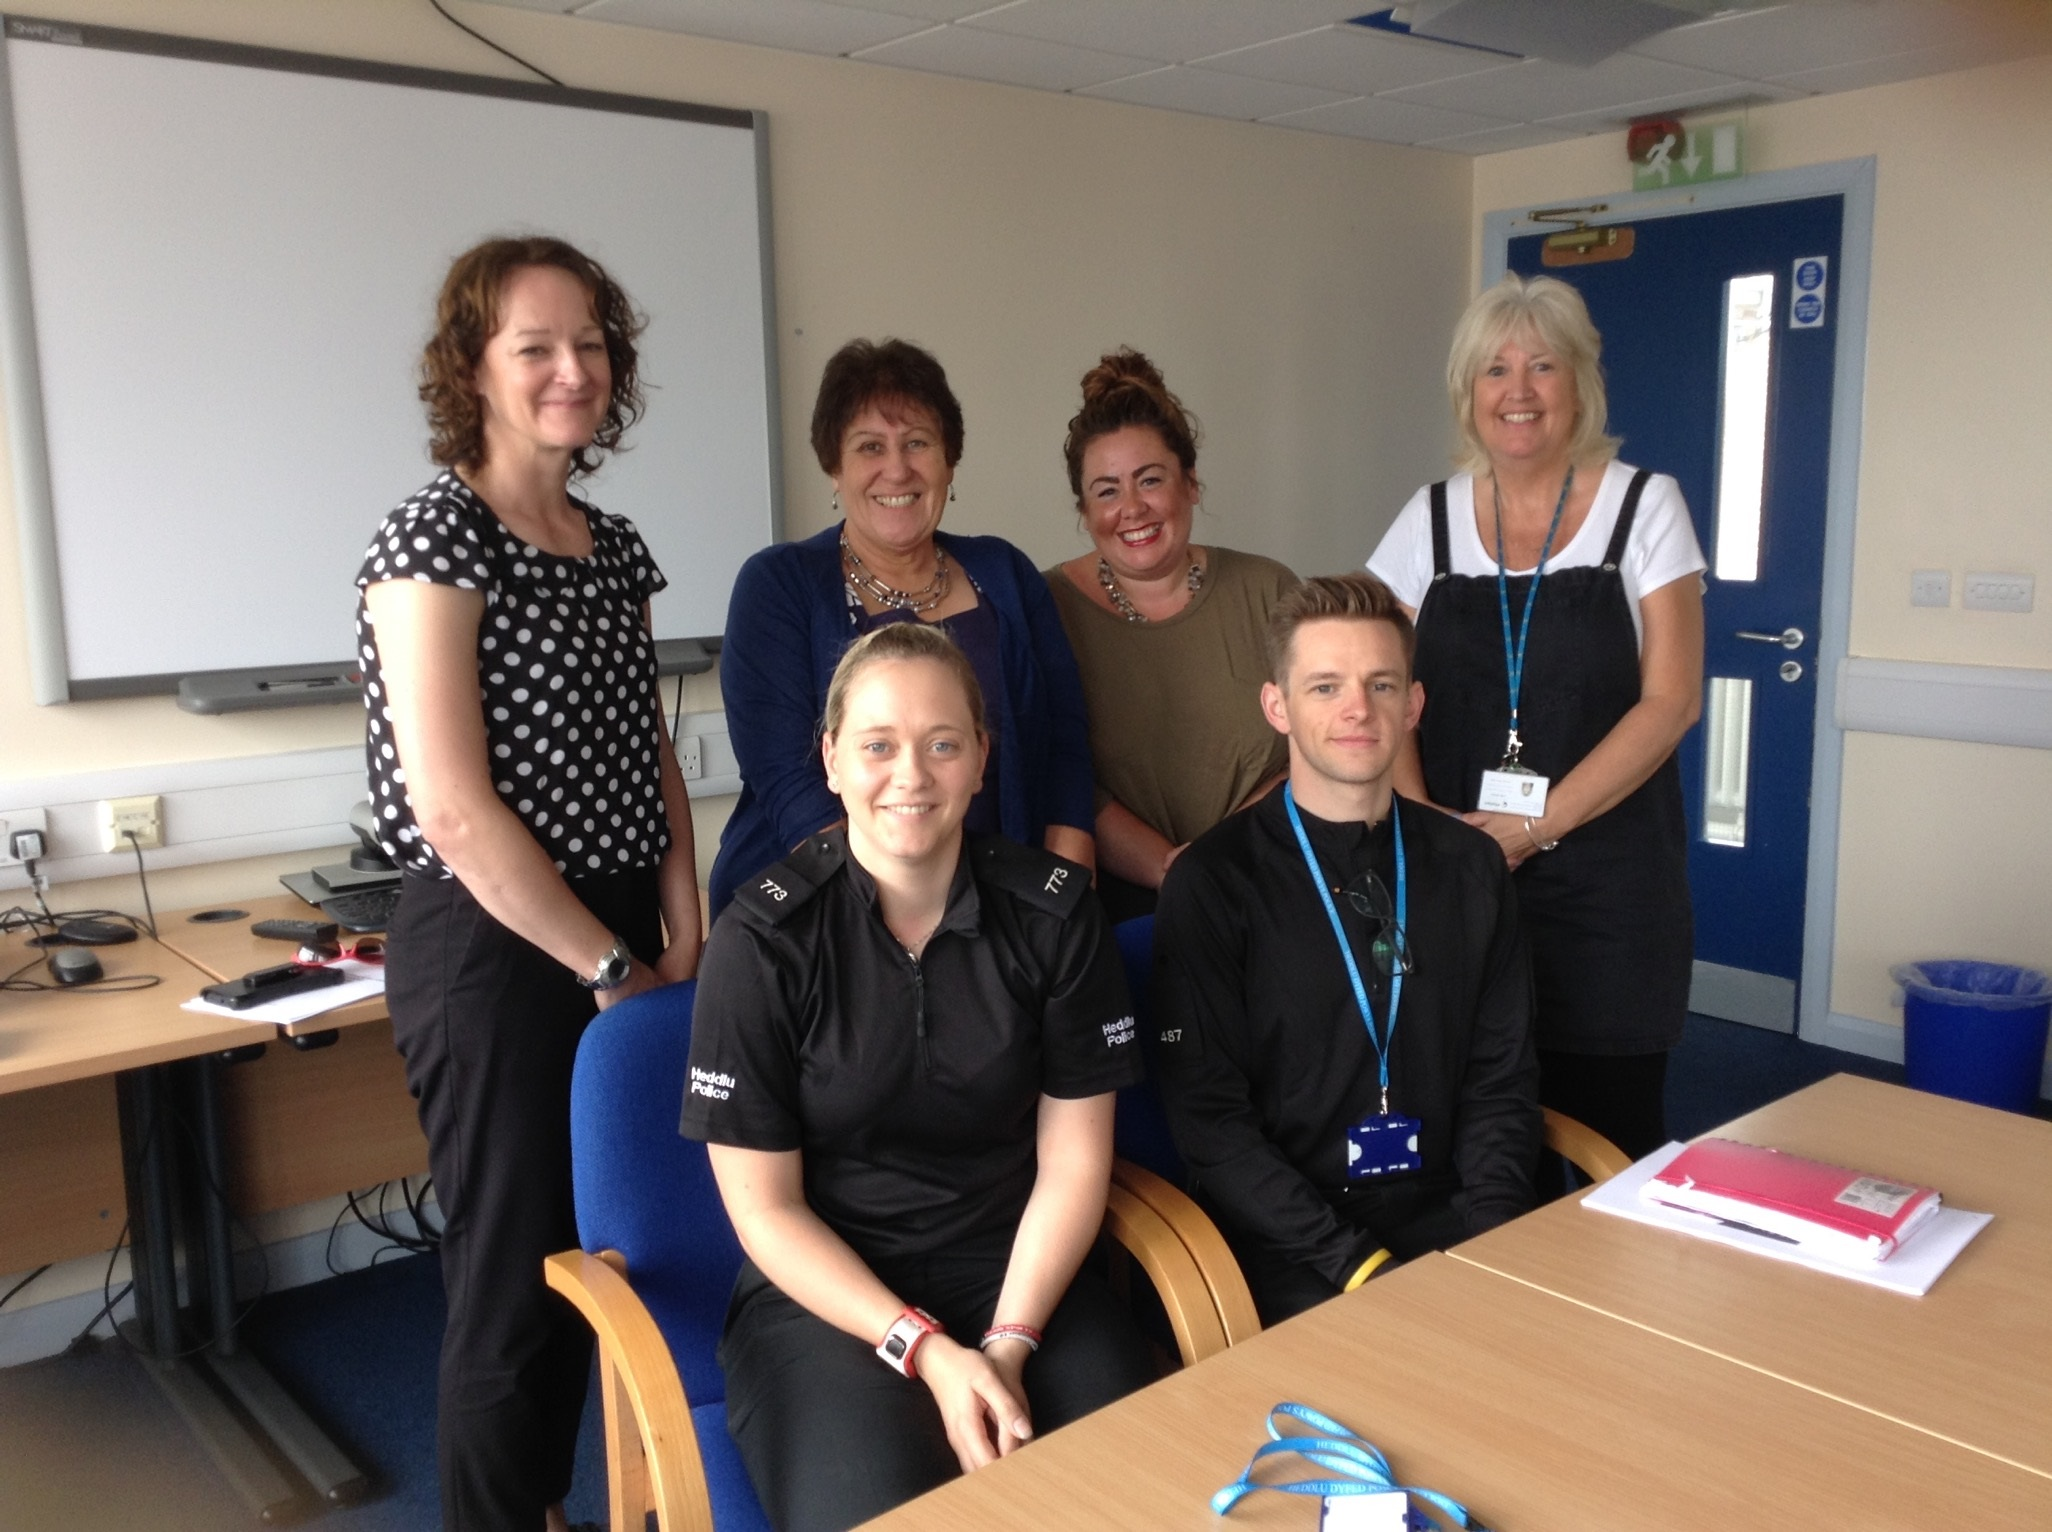 Domestic abuse training: Jenny and her colleagues are pictured with student officers Zoe and Kyle.